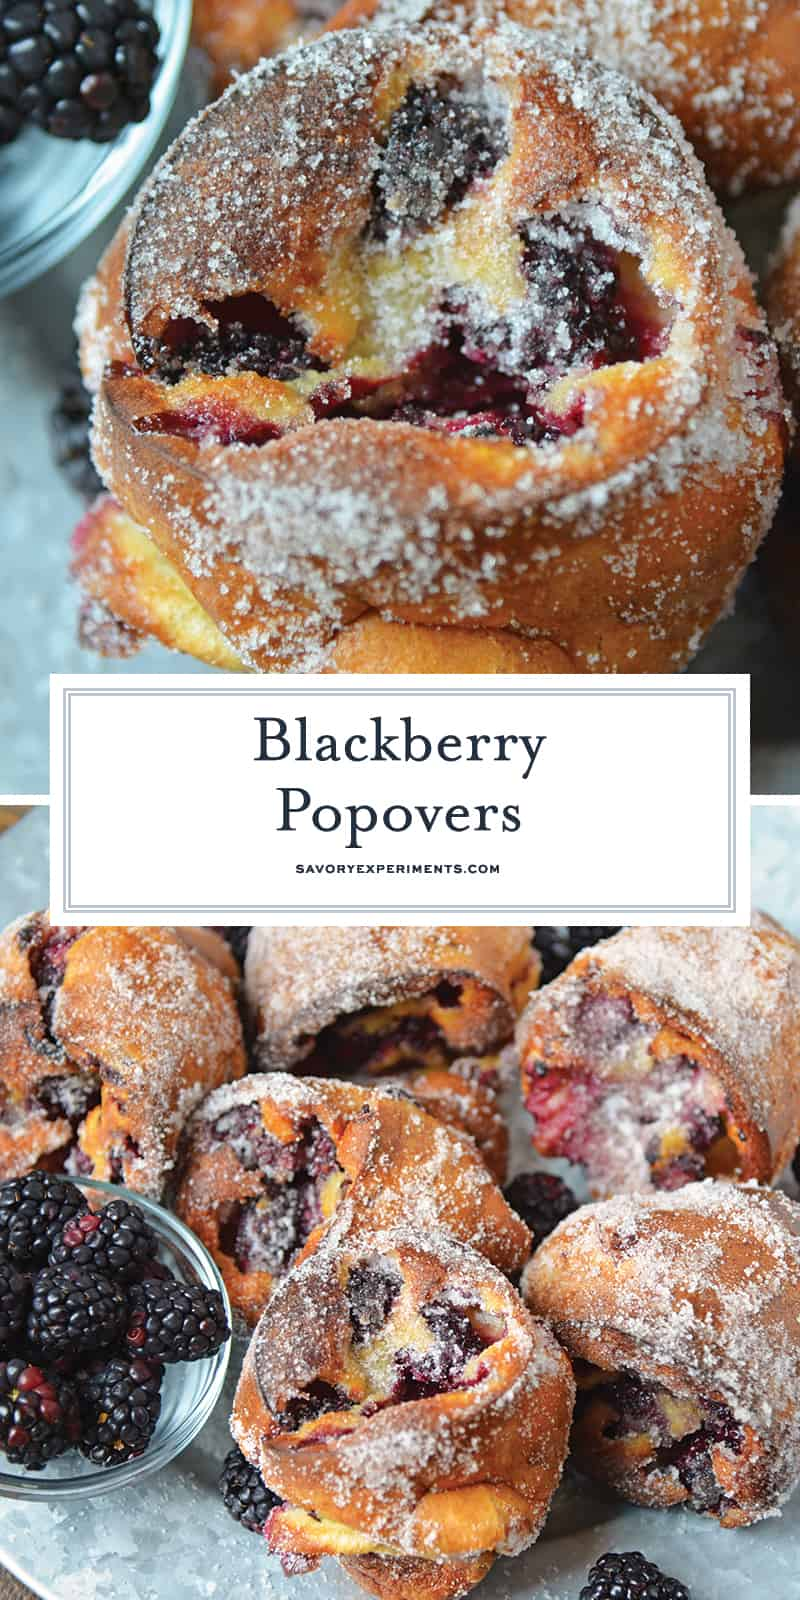 These Blackberry Popovers are a true melt-in-your-mouth breakfast treat, guaranteed to impress guests. Easier to make than you think, too! #popovers #popoverrecipe #bestpopovers www.savoryexperiments.com